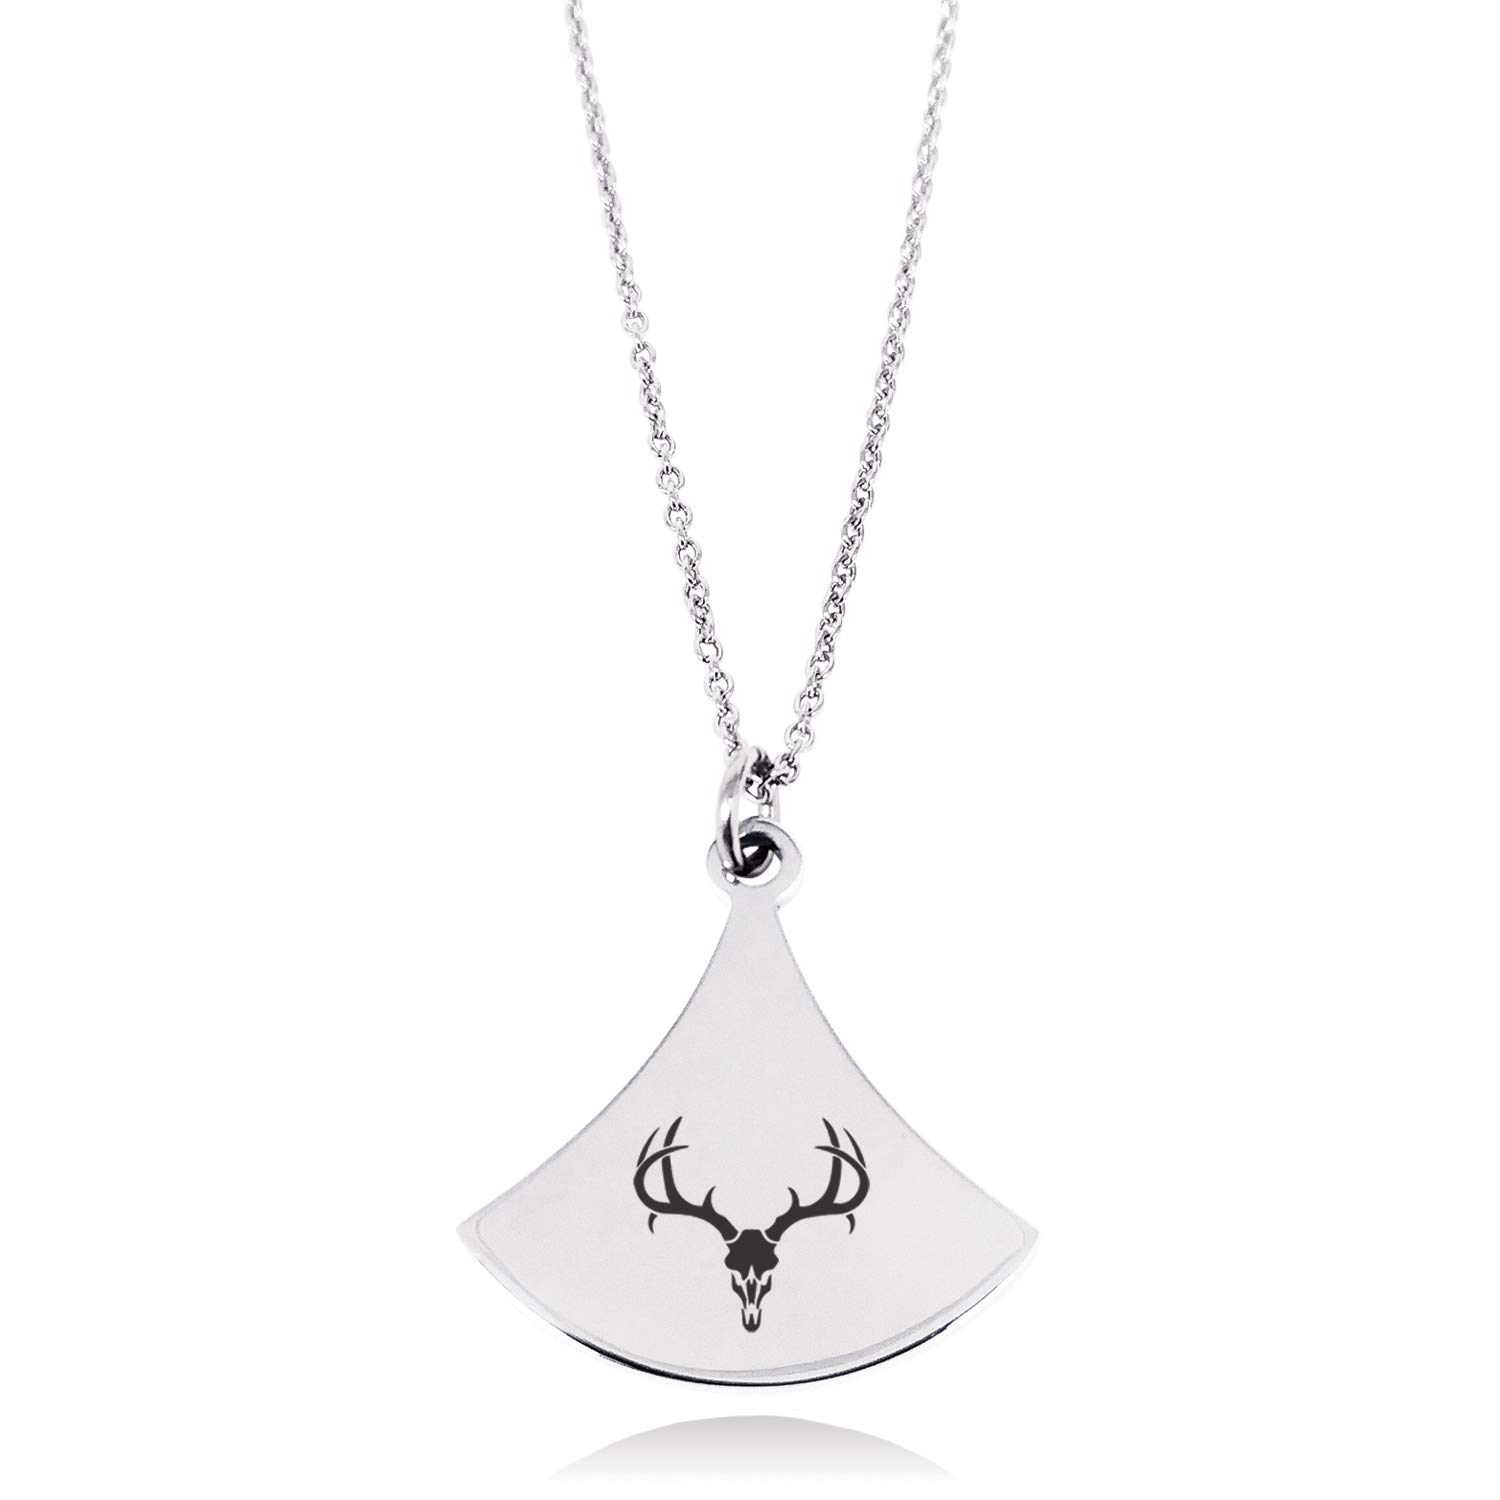 Stainless Steel Colossal Antlers Pendulum Curved Triangle Charm Pendant Necklace